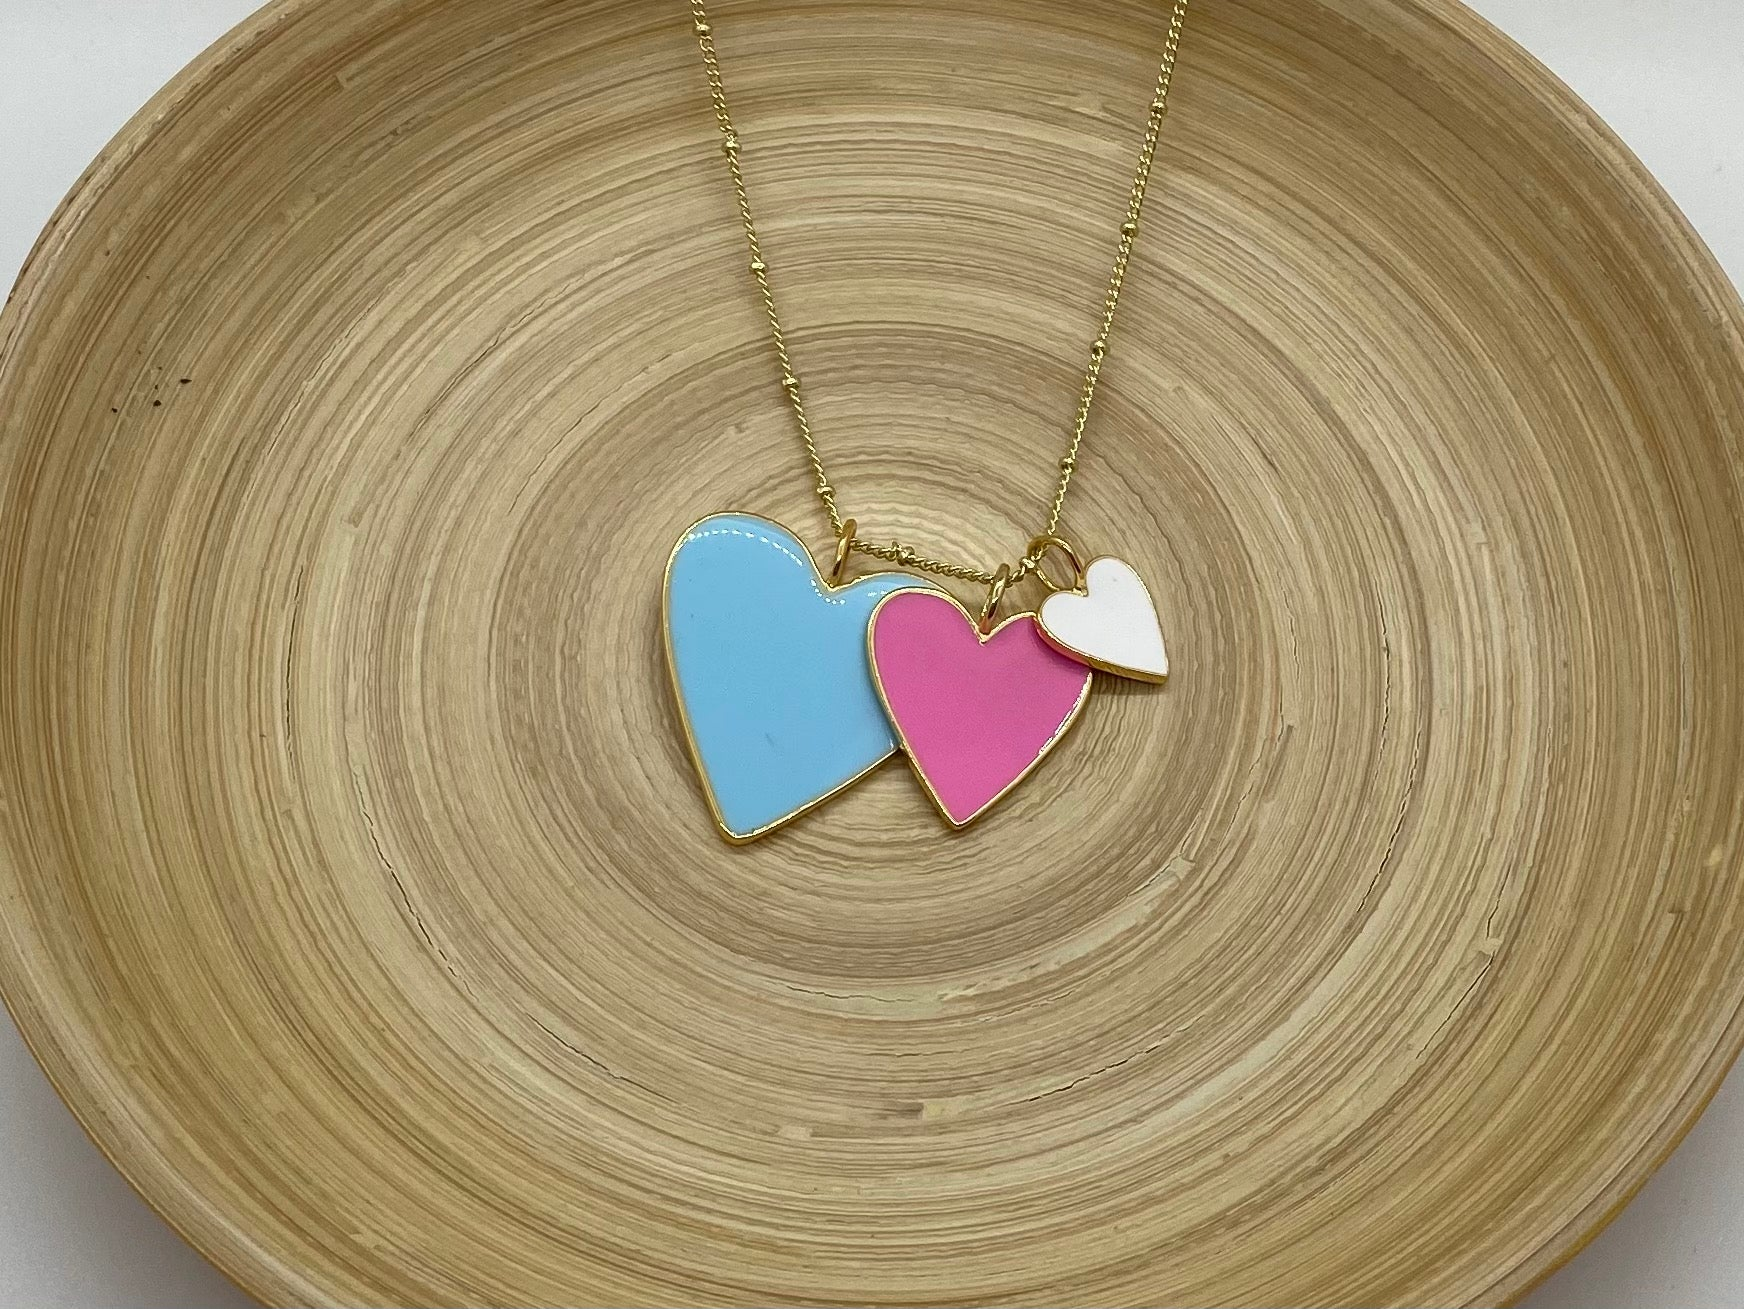 Heart Trio Necklace - Light Blue Pink and White